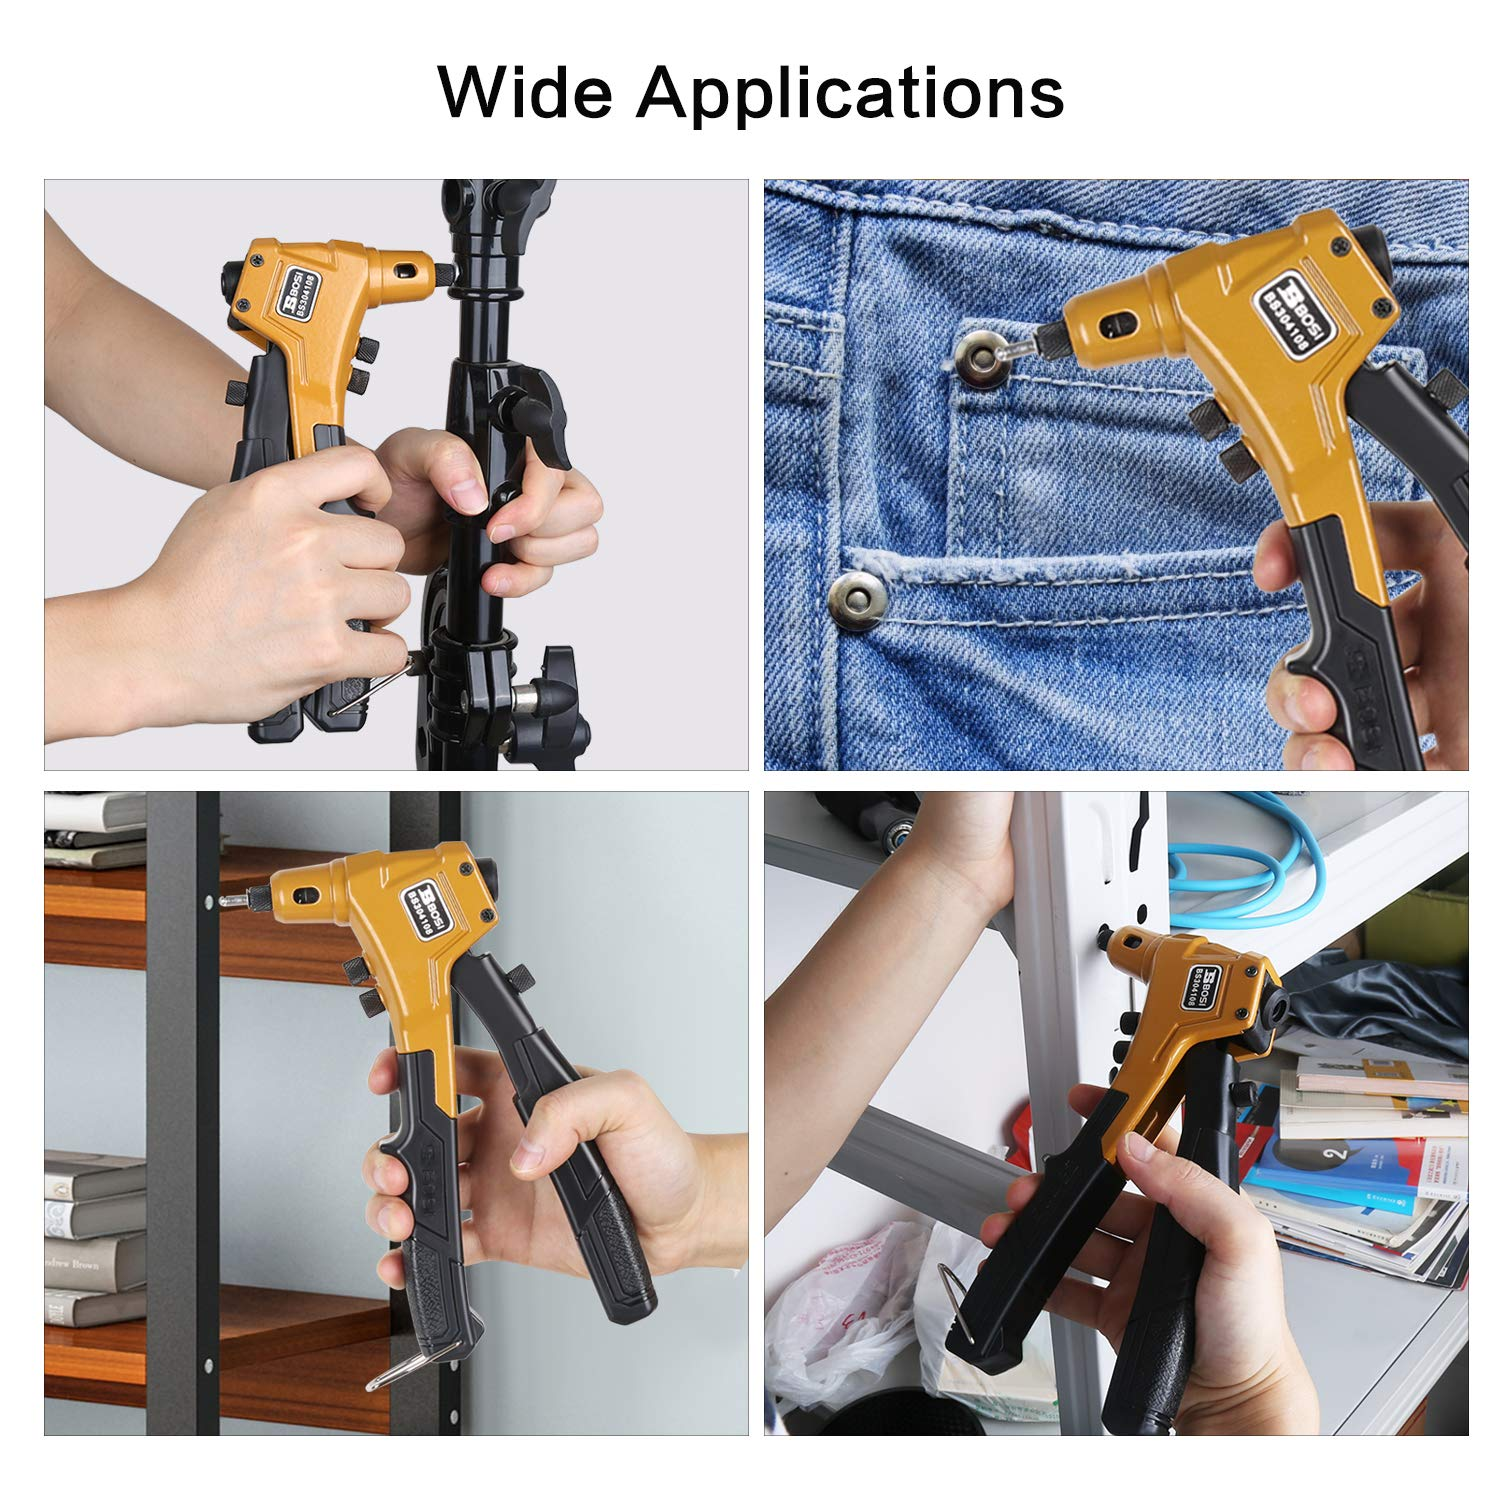 Rivet Gun One Hand Riveter Kits with 4 Interchangeable Nosepieces 4 in 1 Rivet Tools with 80pcs Rivets BOSI Tools BS304108